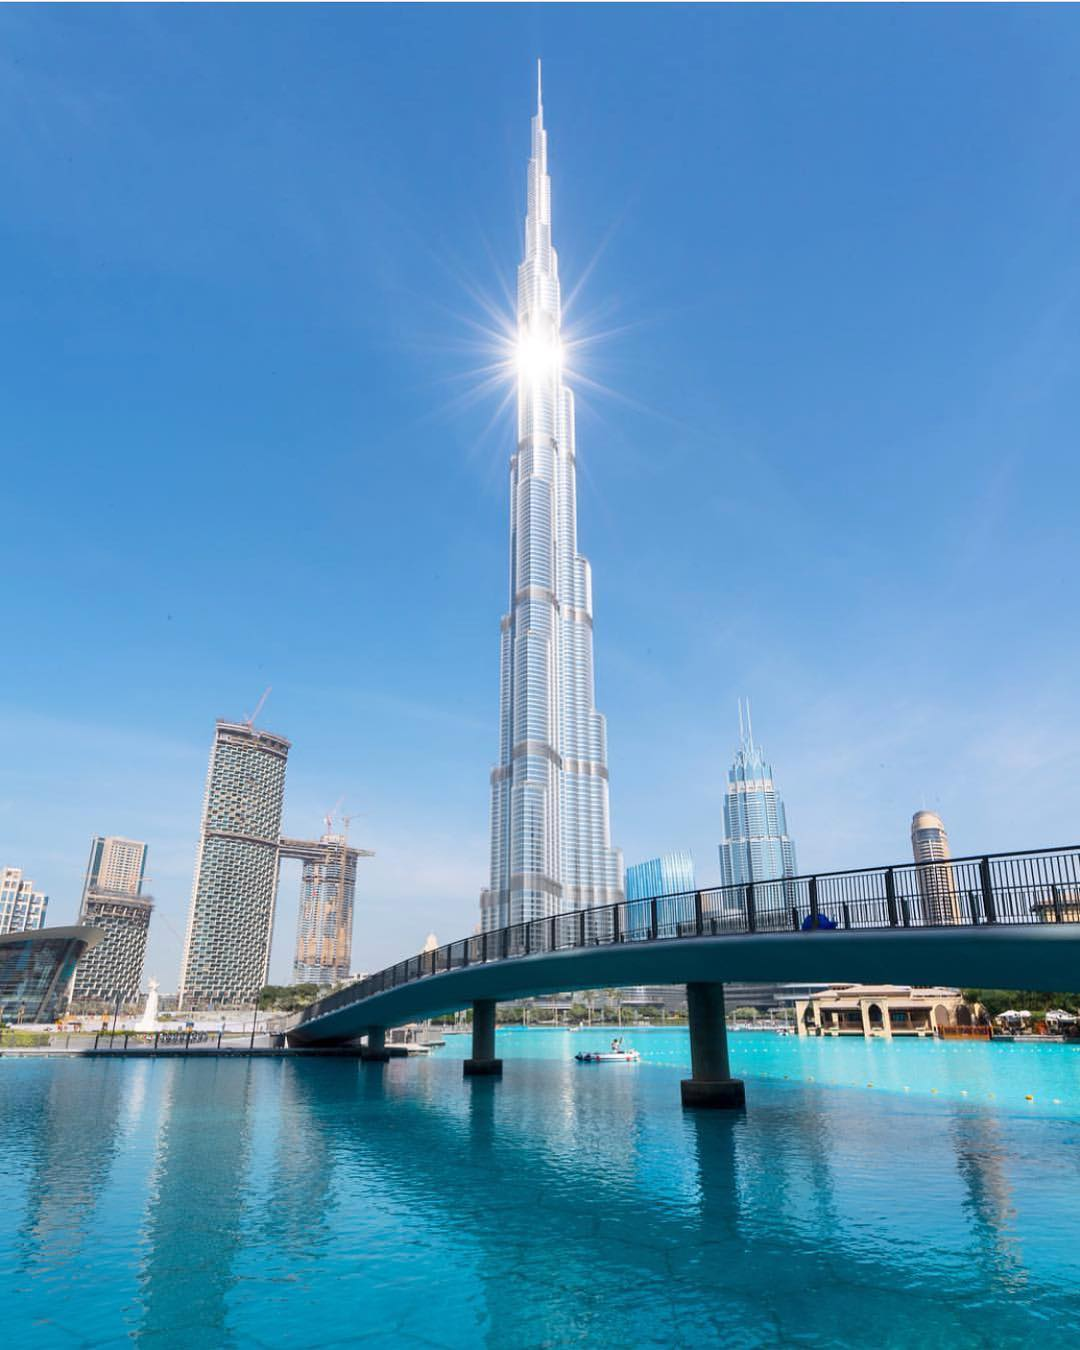 REVEALED: Most popular UAE attractions for Pinoy travelers - The